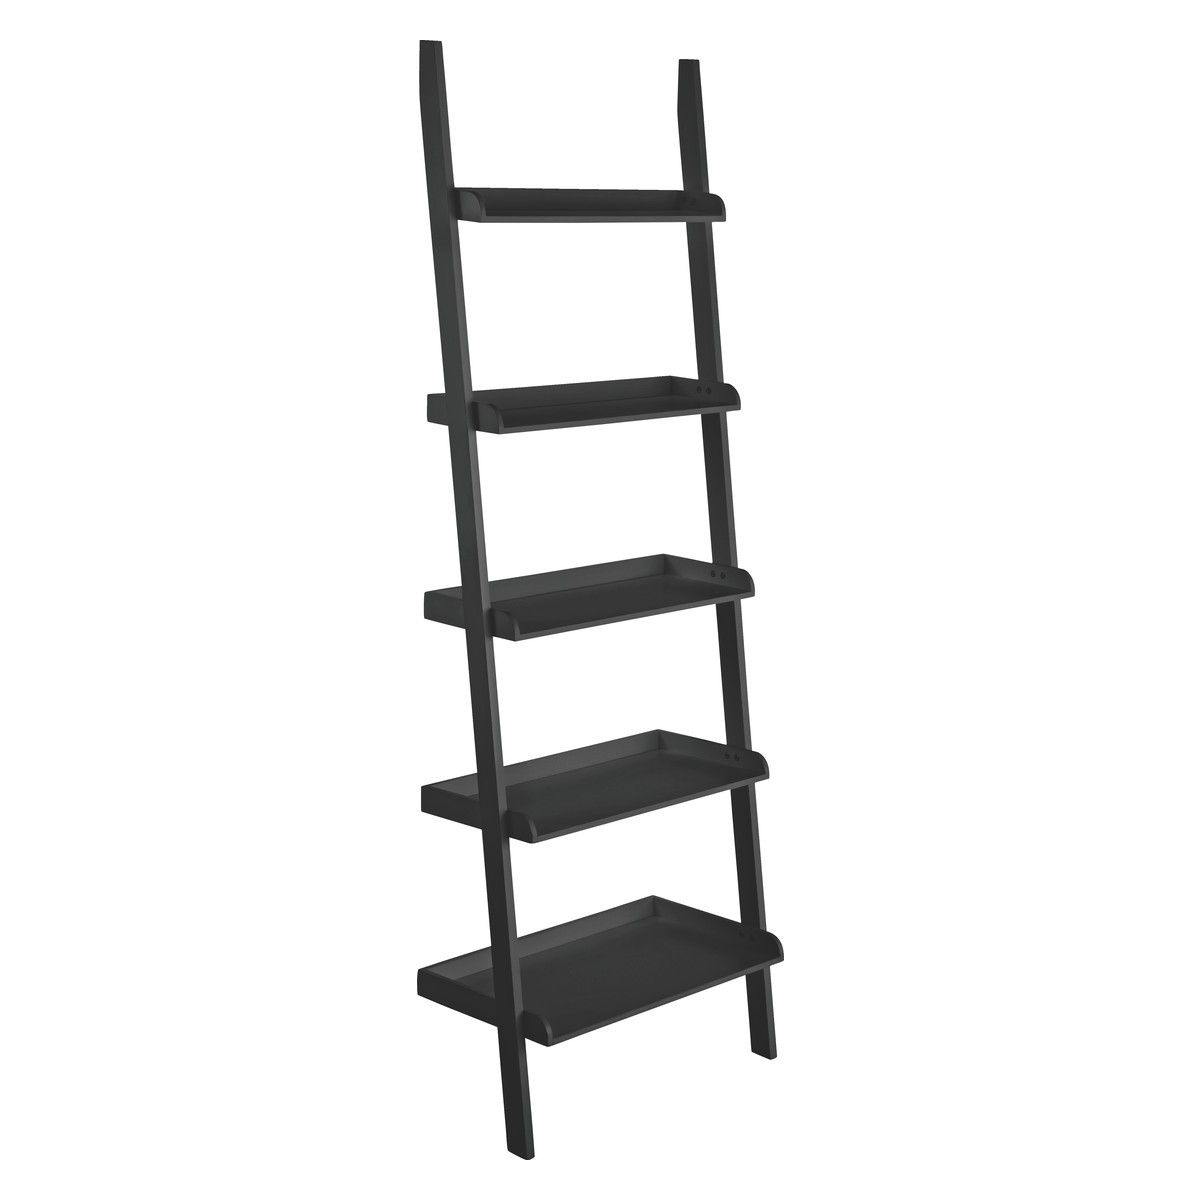 Jessie black wide leaning bookcase apartments room accessories